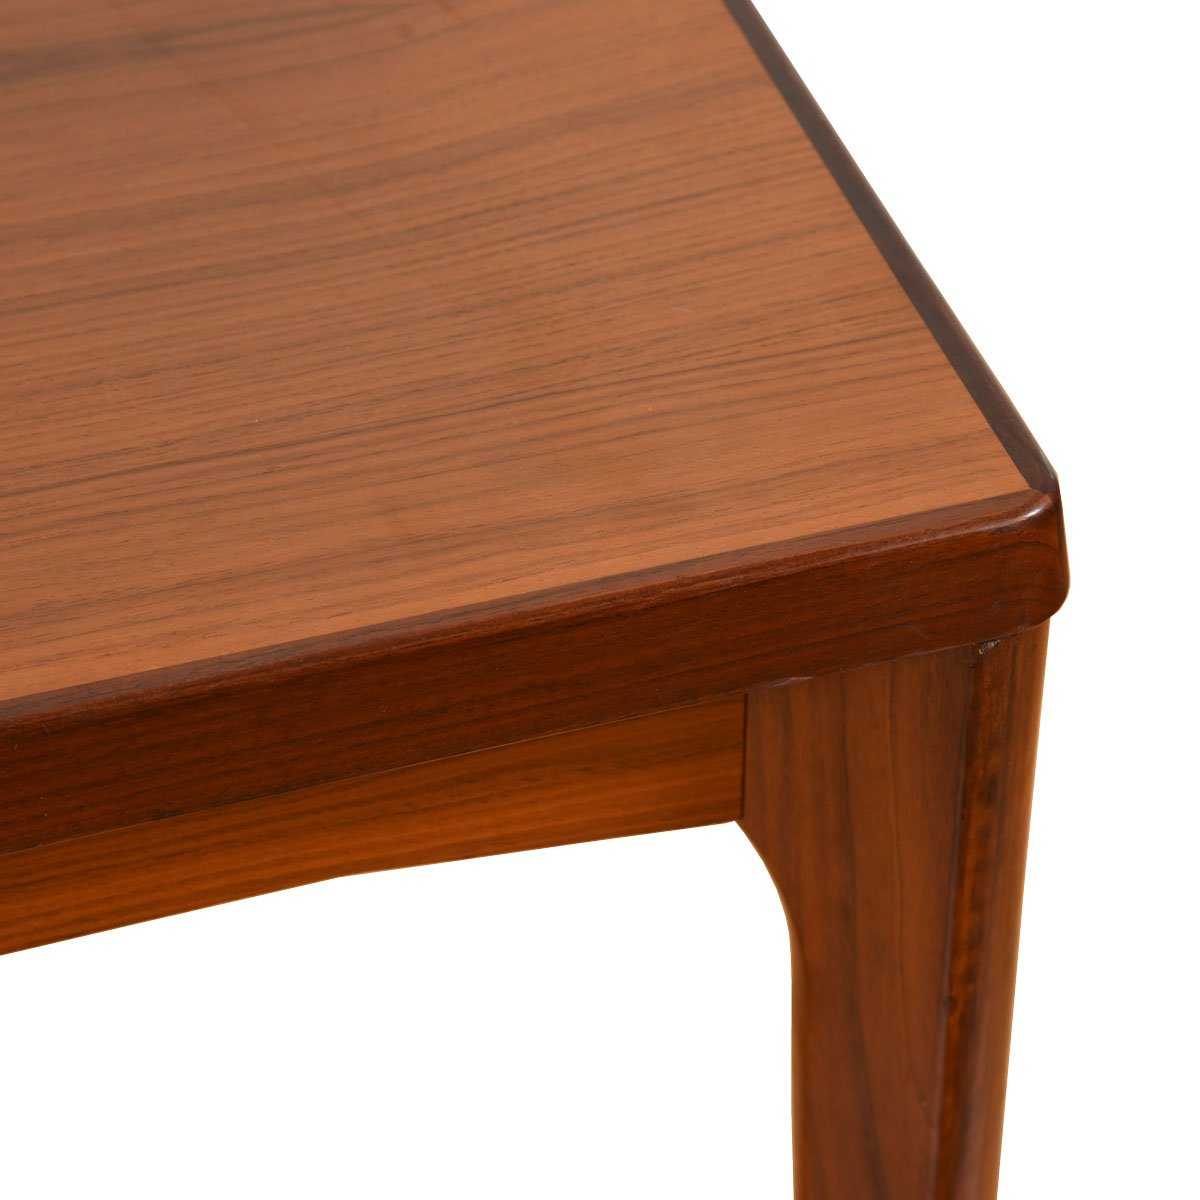 Apartment Sized Danish Modern Two-Tone Expanding Dining Table